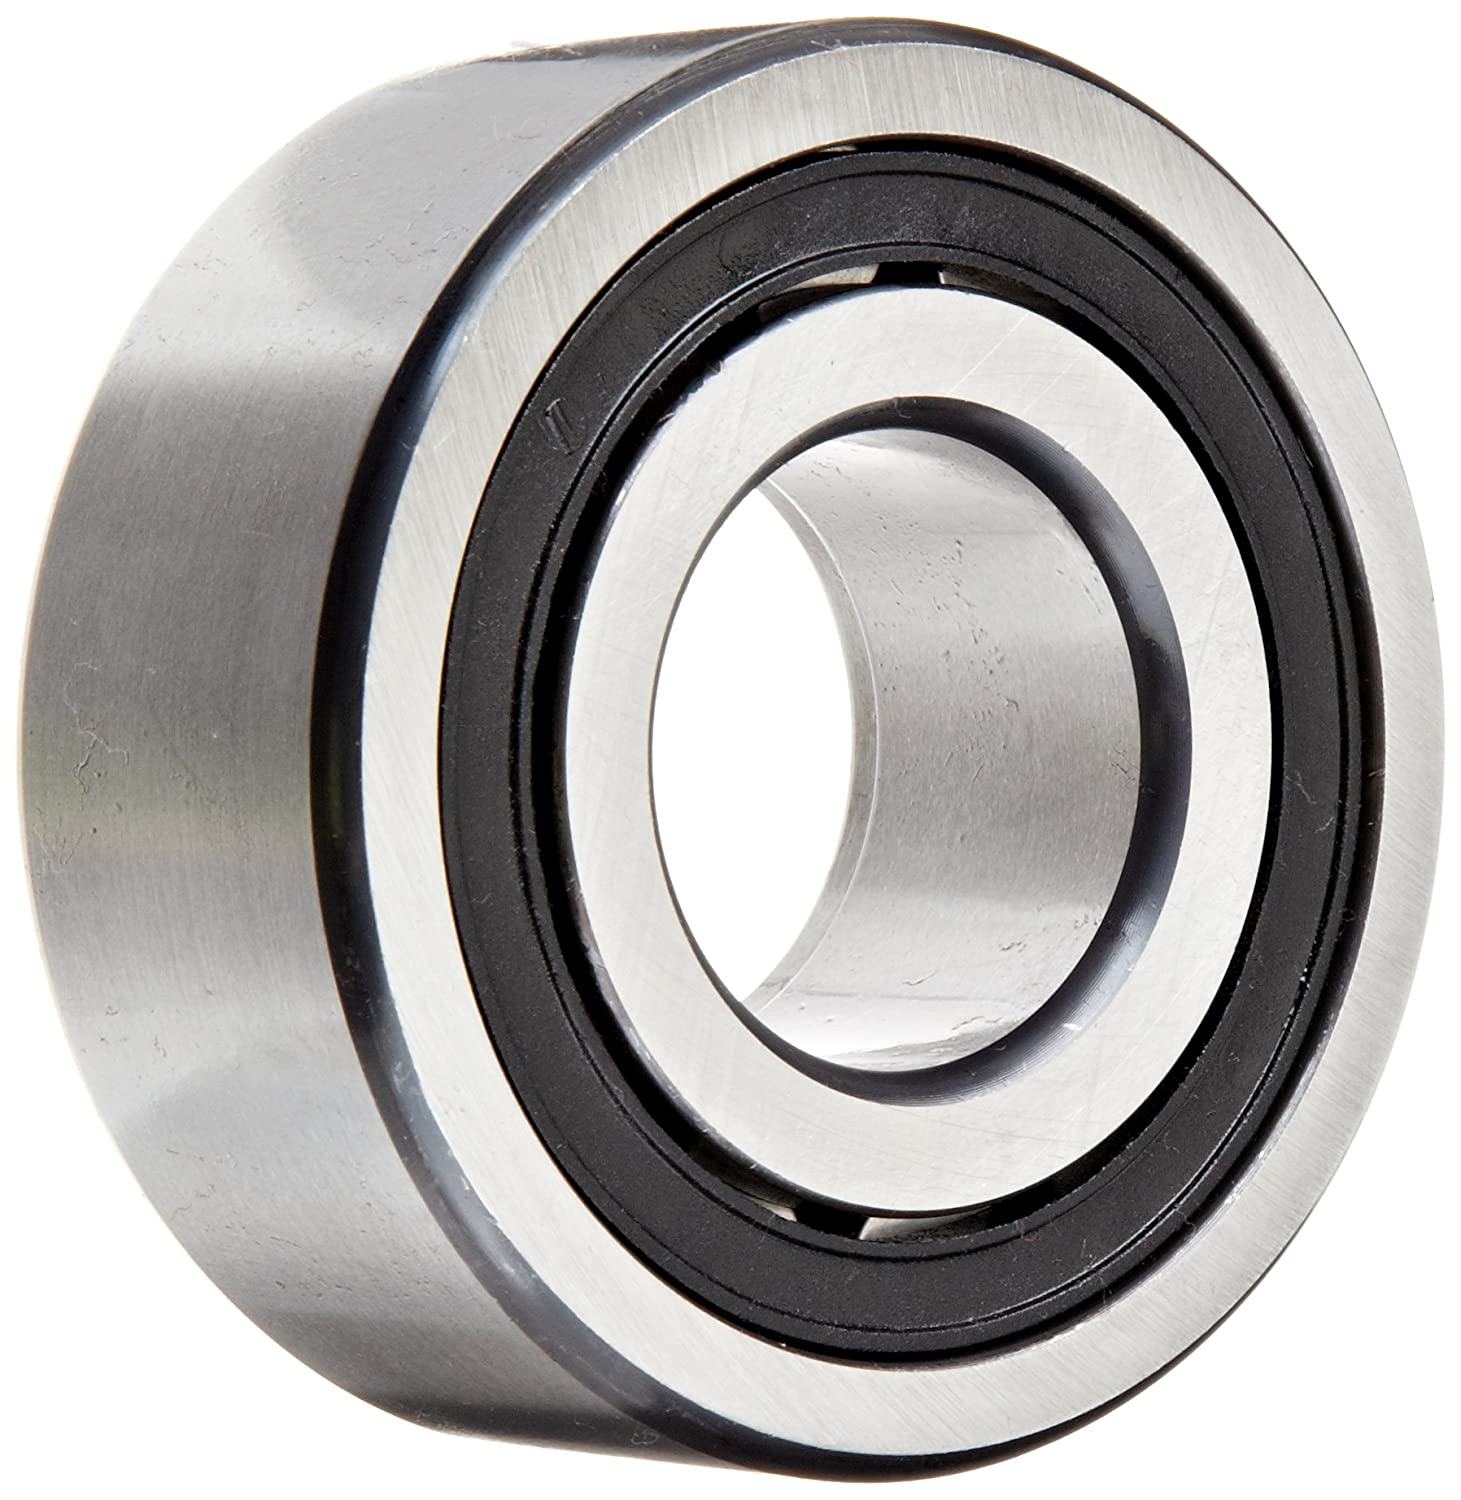 23mm Width Schaeffler Technologies Co Metric 90mm OD 40mm ID Single Row Removable Inner Ring High Capacity FAG NUP308E-M1 Cylindrical Roller Bearing NUP308-E-M1 Straight Bore Normal Clearance Two Piece